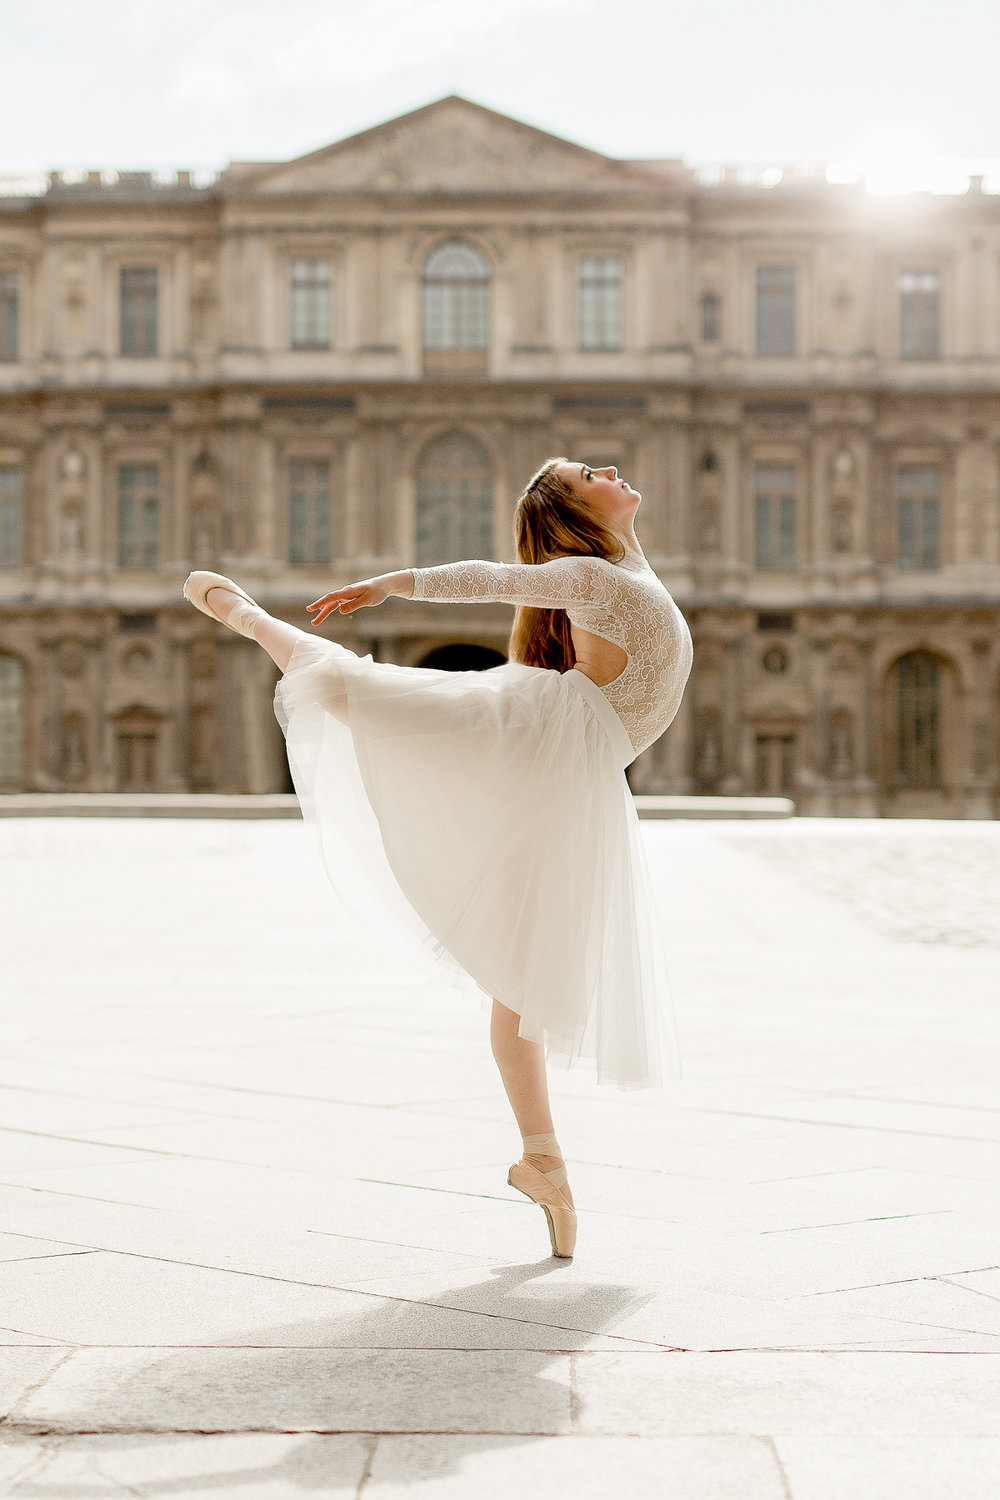 paris-ballerina-photographer-Katie_donnelly_photography-Louvre_eiffel_tower-50.jpg